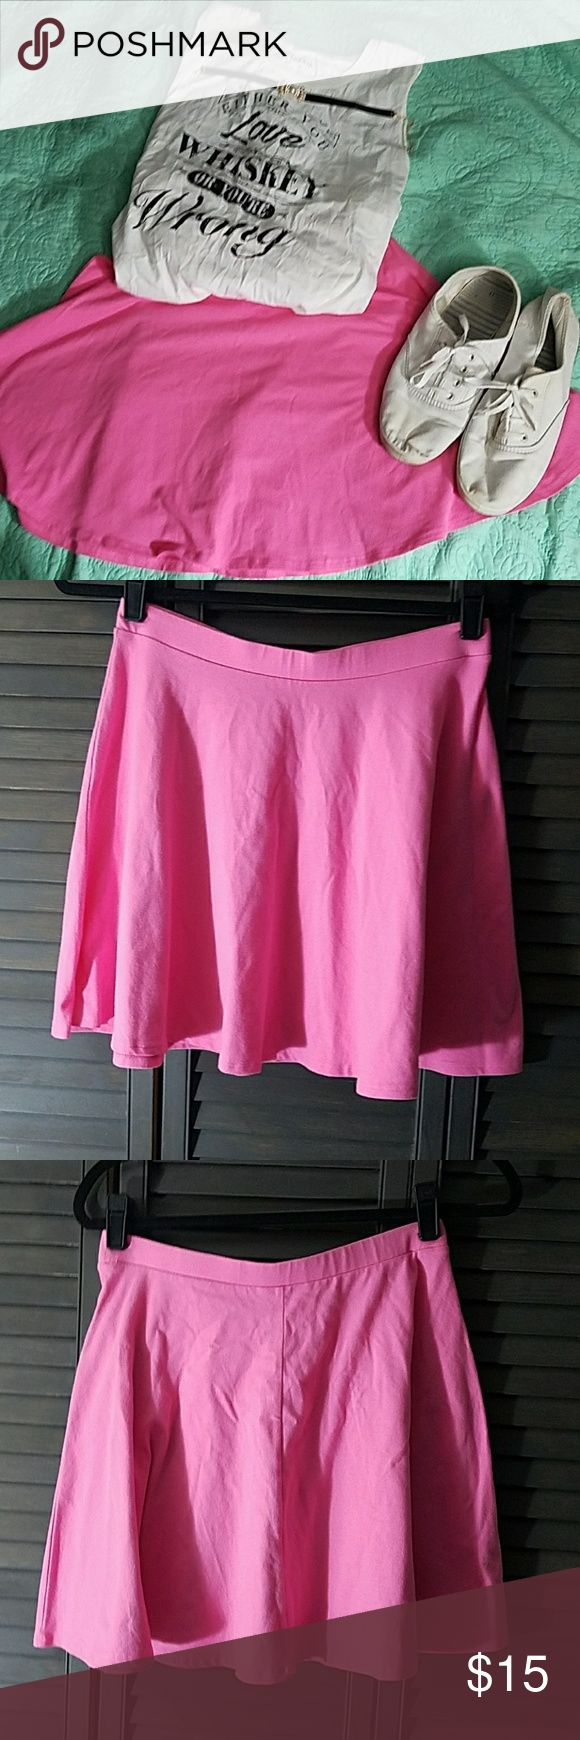 """Cute Hot Pink Skater Skirt Cute Hot Pink Skater skirt. In great used condition with no signs of wear. Waistband is 14.5"""" unstretched laying flat. Length is 16"""". Forever 21 Skirts"""